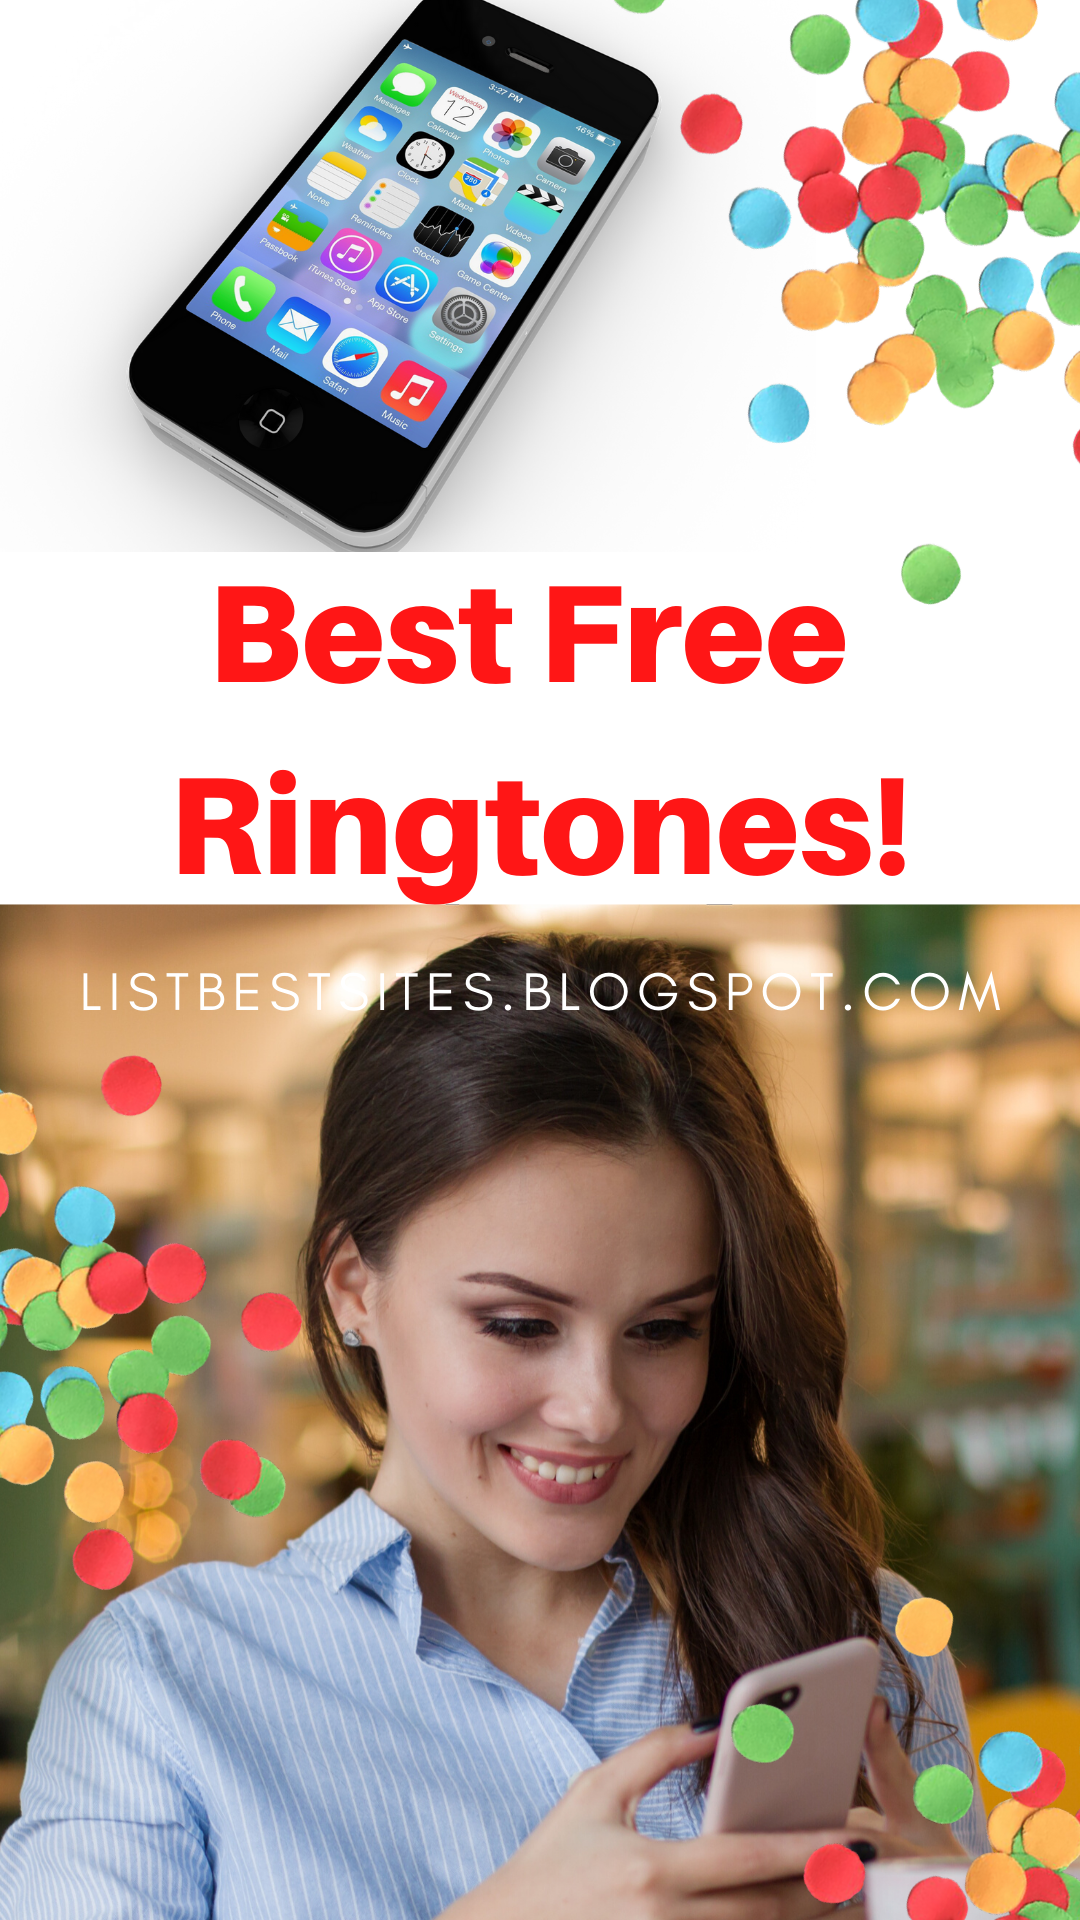 c355f2ccf0e50fc26072afd5880e1e73 - How To Get Free Music Ringtones For Iphone 5